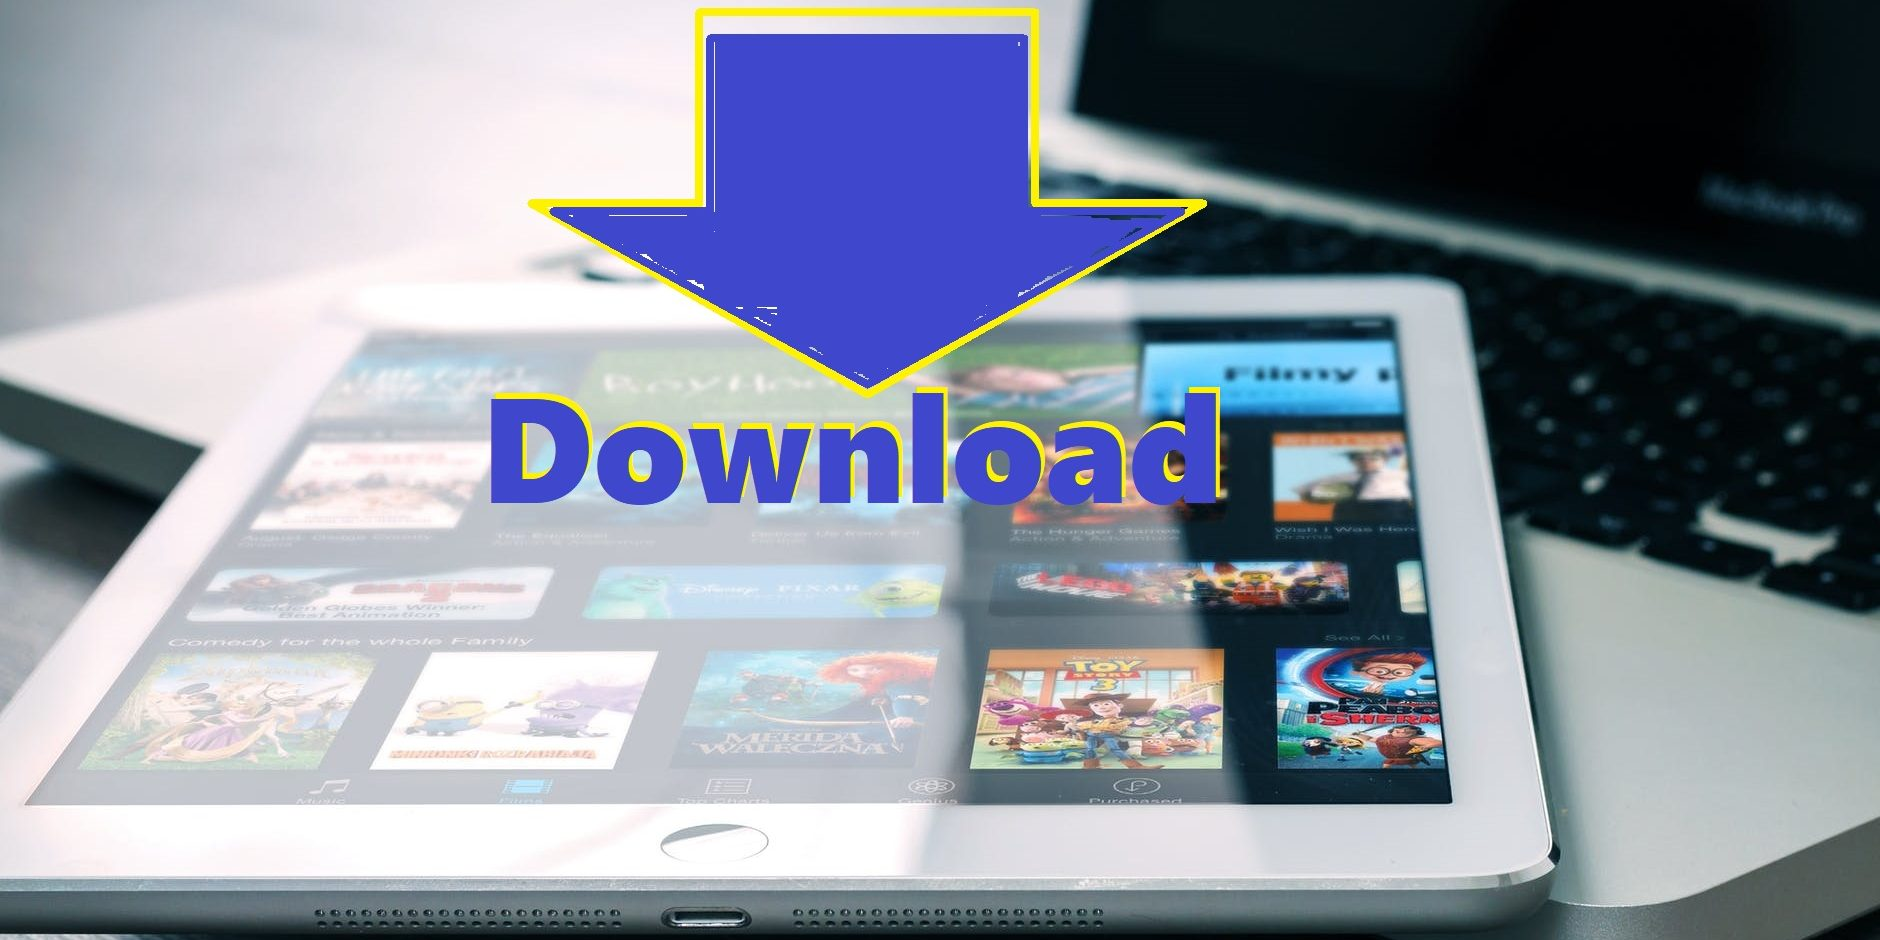 Hollywood dubbed movies from TamilGun website safe to download?